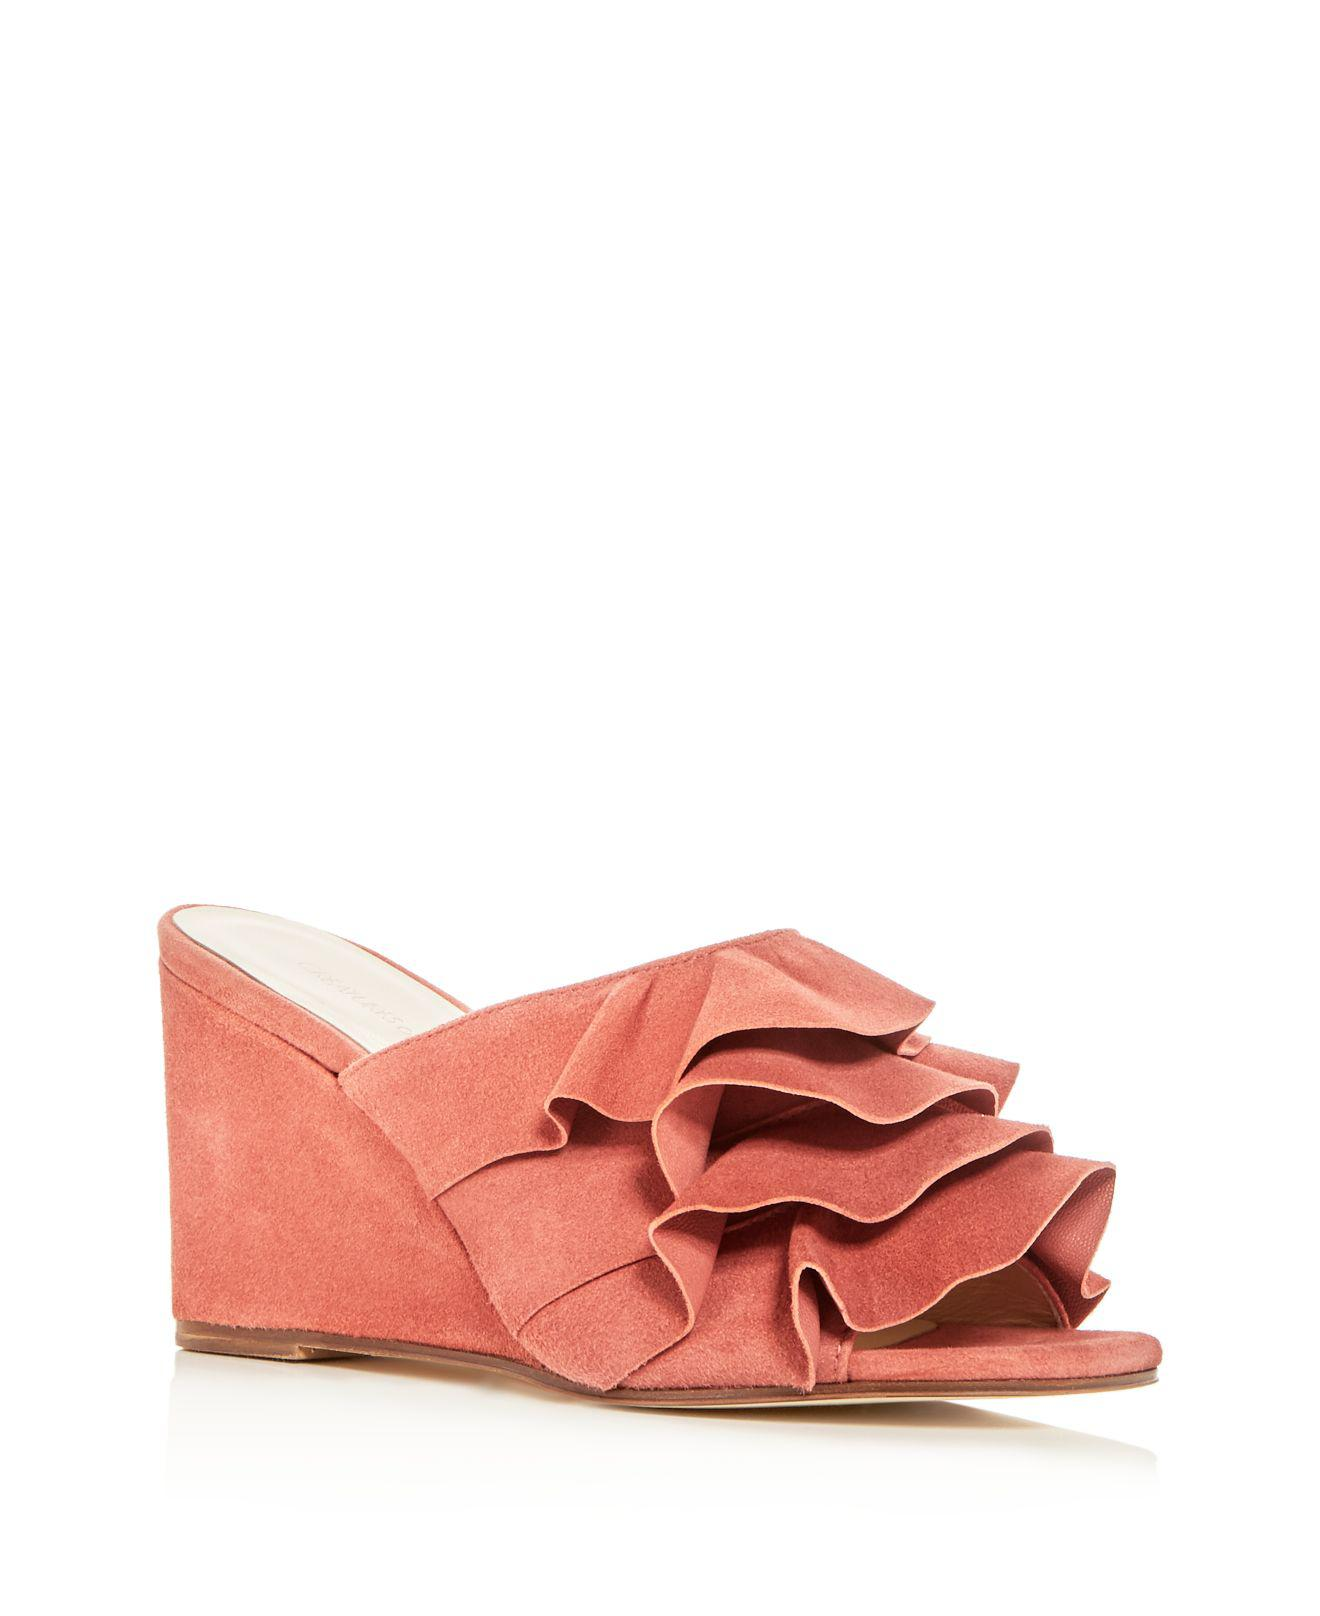 CREATURES OF COMFORT Women's Keira Ruffled Suede Wedge Slide Sandals ogUMDddLh